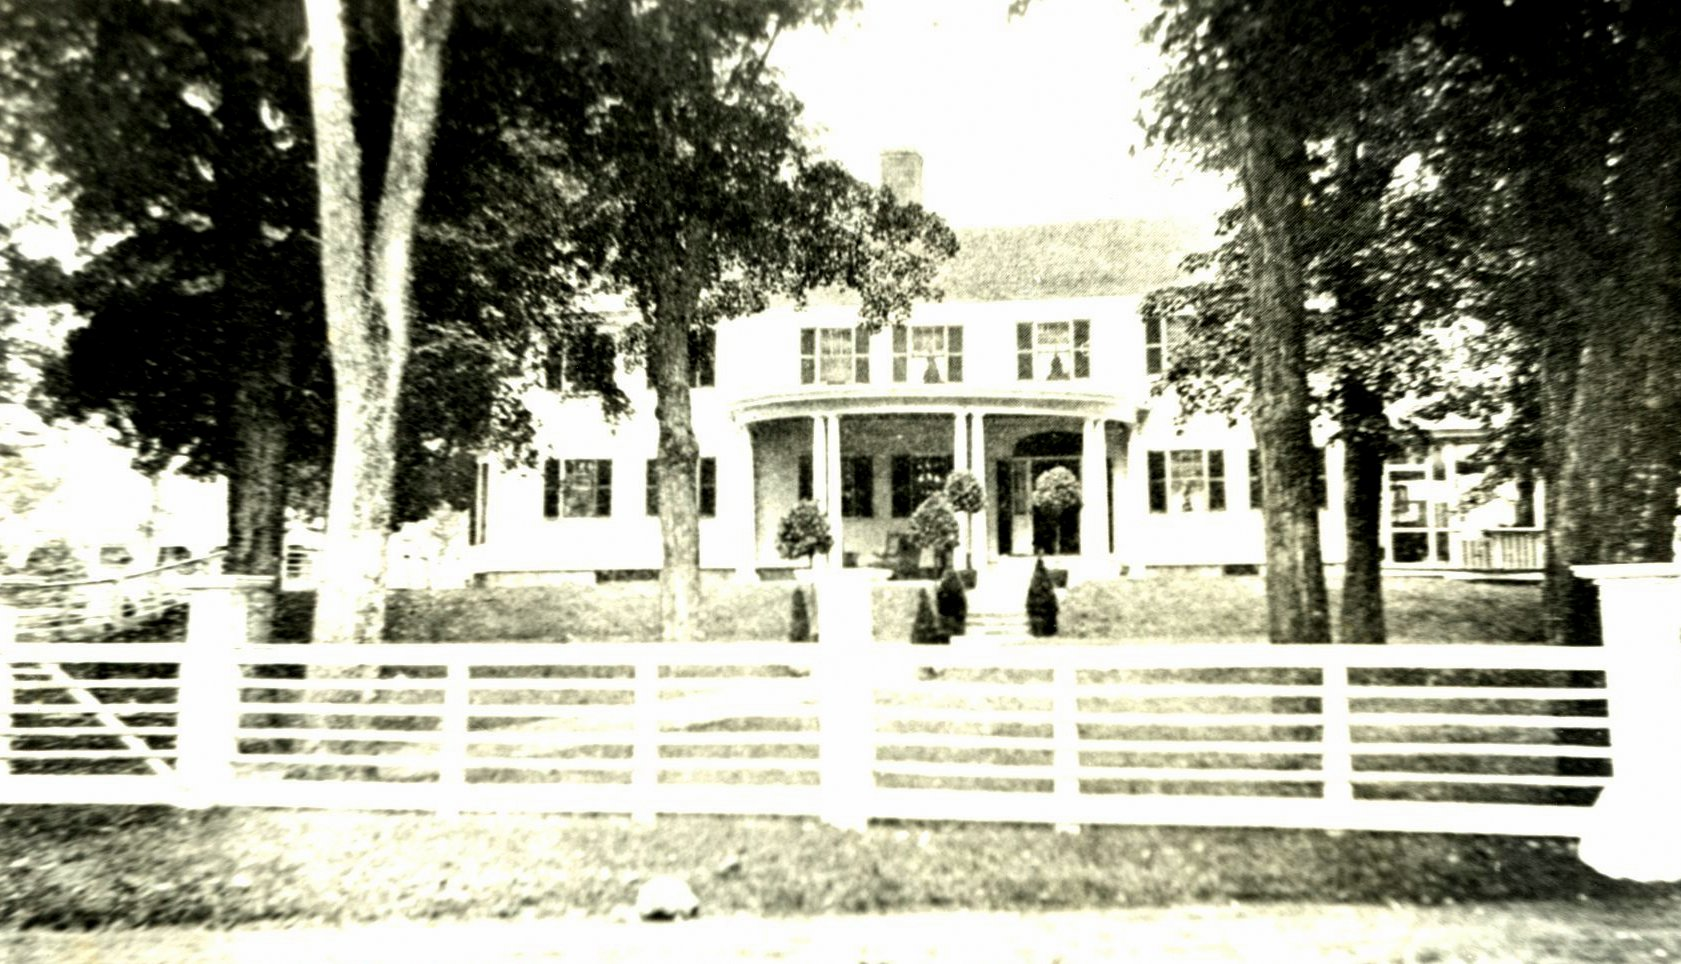 Photograph of Perkins Manor.